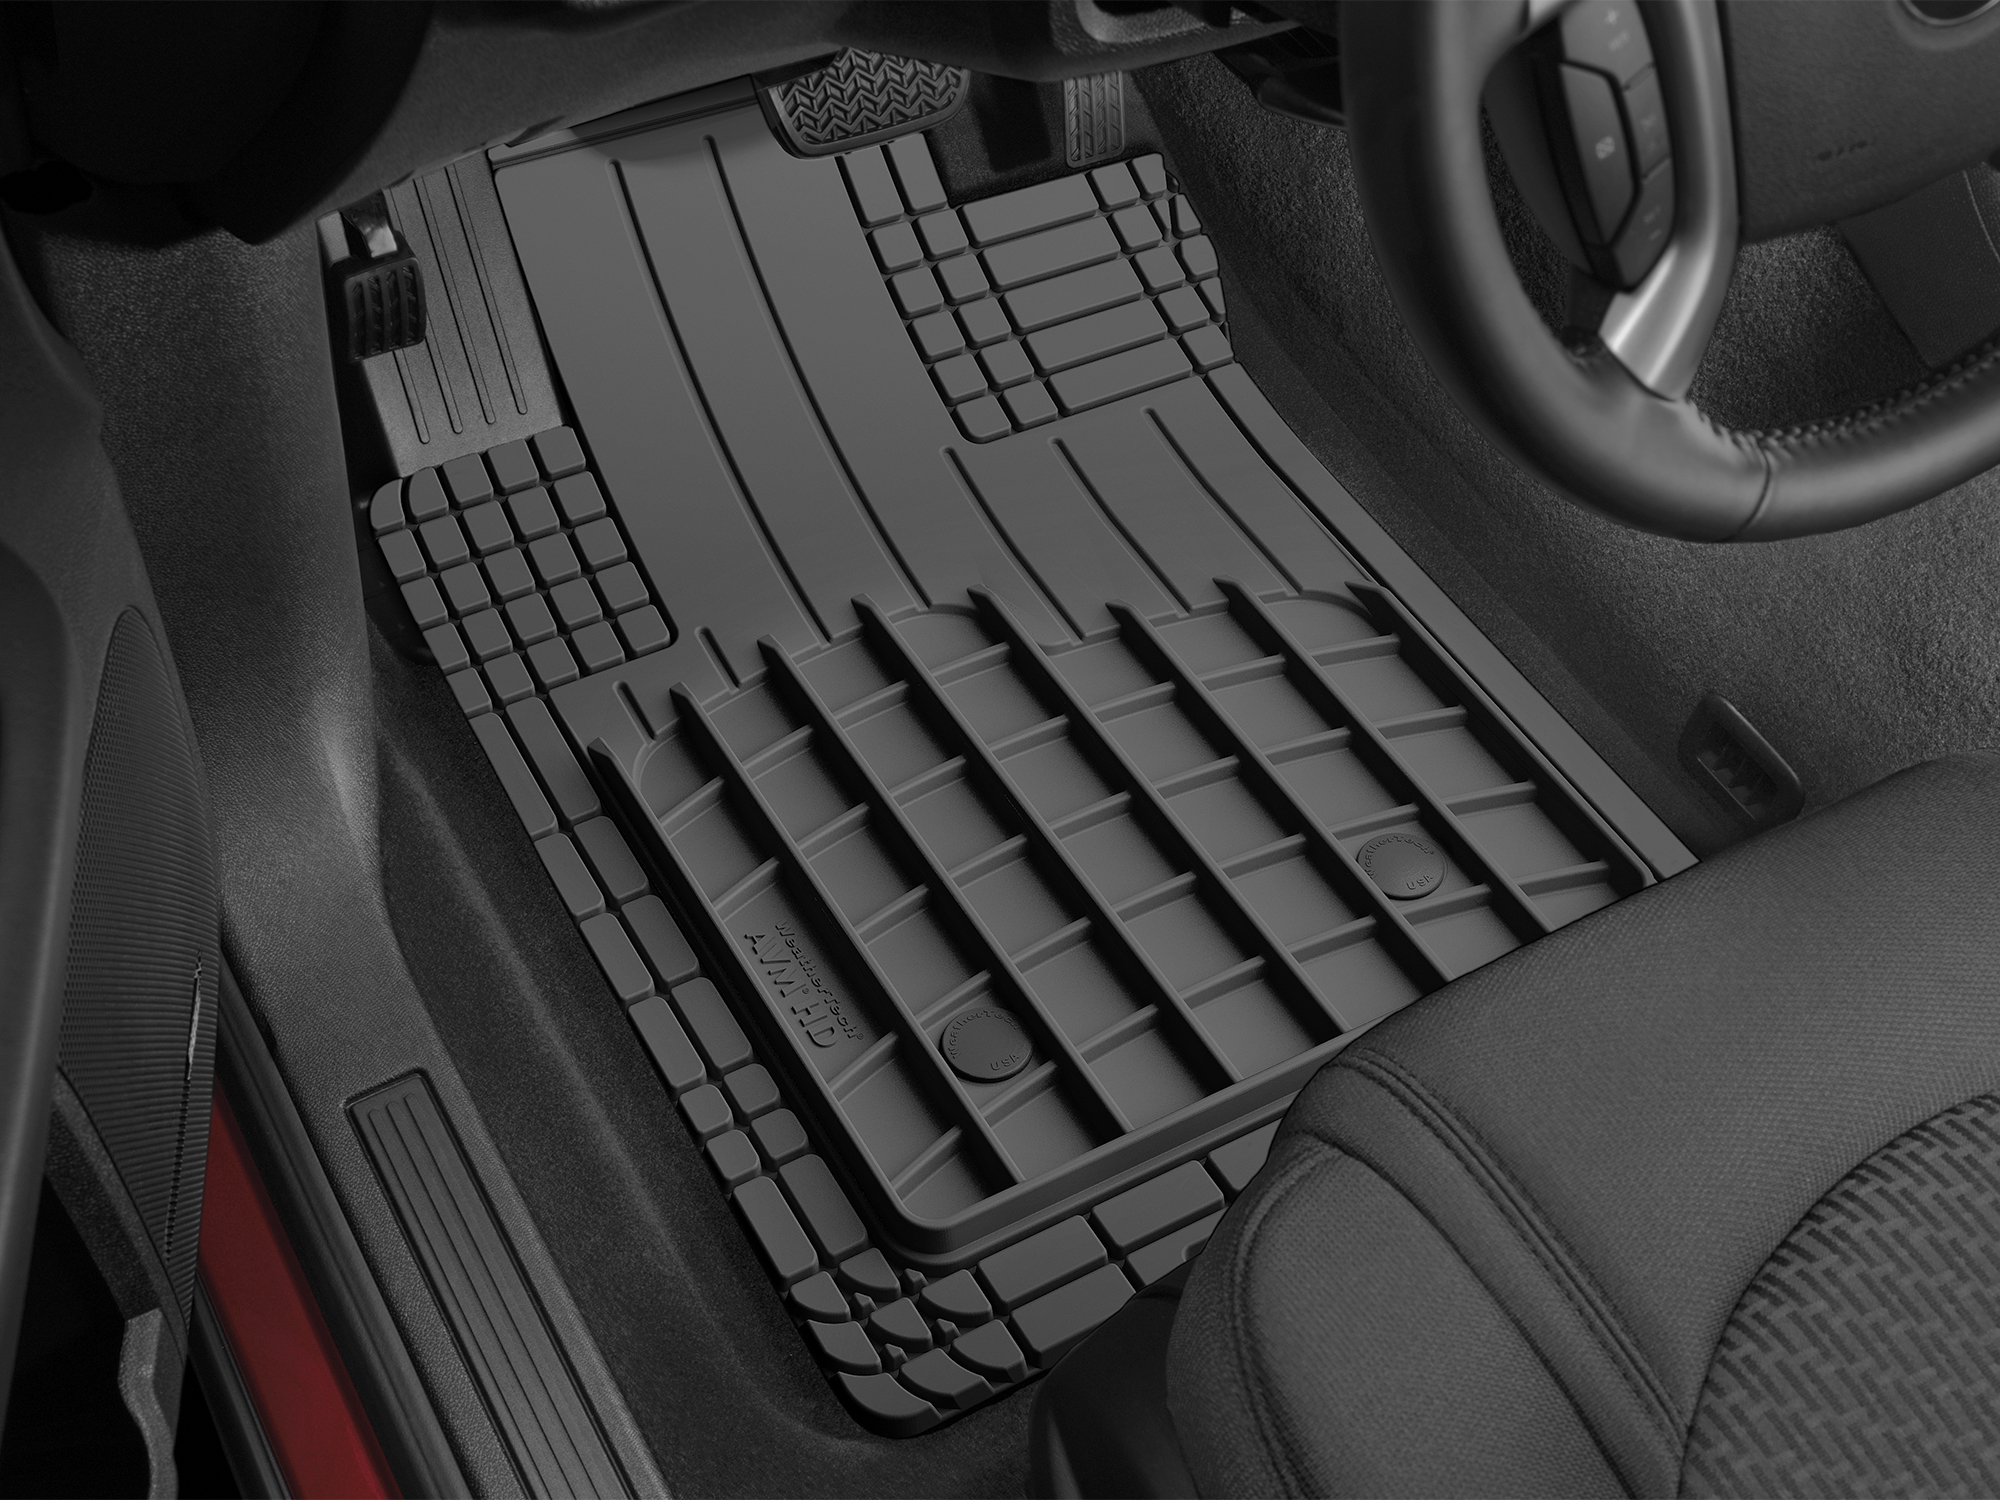 Youtube weathertech mats - Avm Hd Heavy Duty Semi Universal Trim To Fit Mats